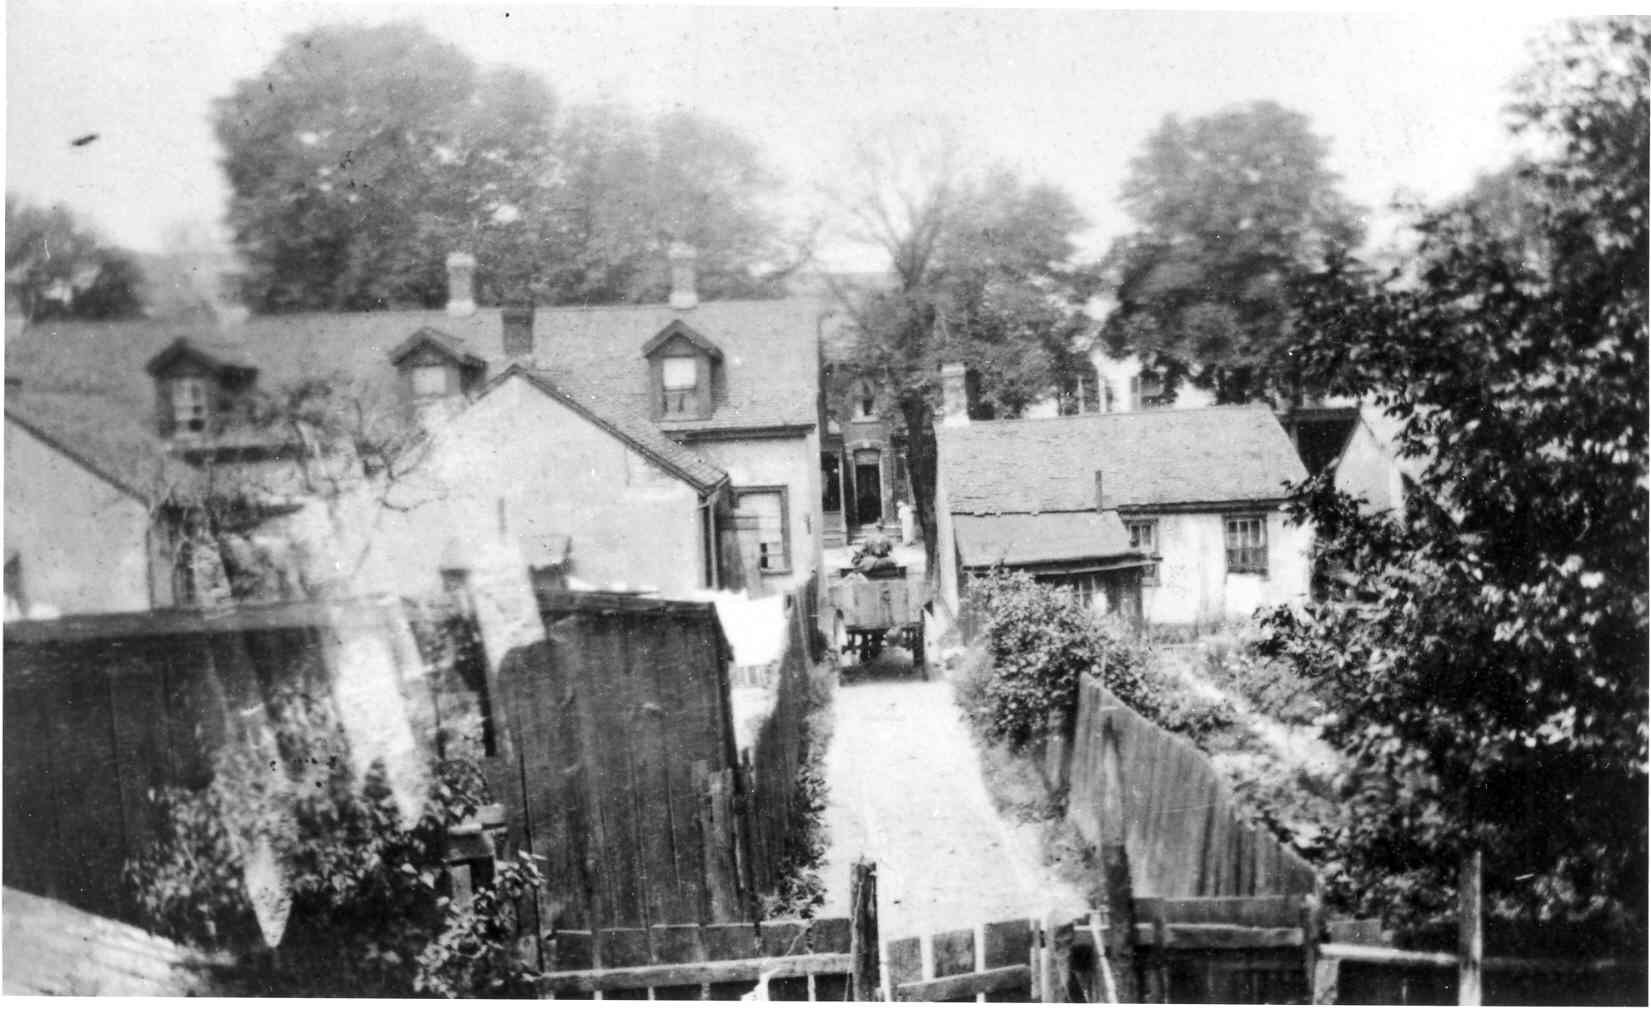 Overhead view of the backyards and laneway behind Menachem Mendel Hyman's residence at 182 Baldwin Street, 23 July 1918. The photo was likely taken from a window on the second floor. In the laneway is a man seated on a horse-drawn wagon.   OJA, item 1168.